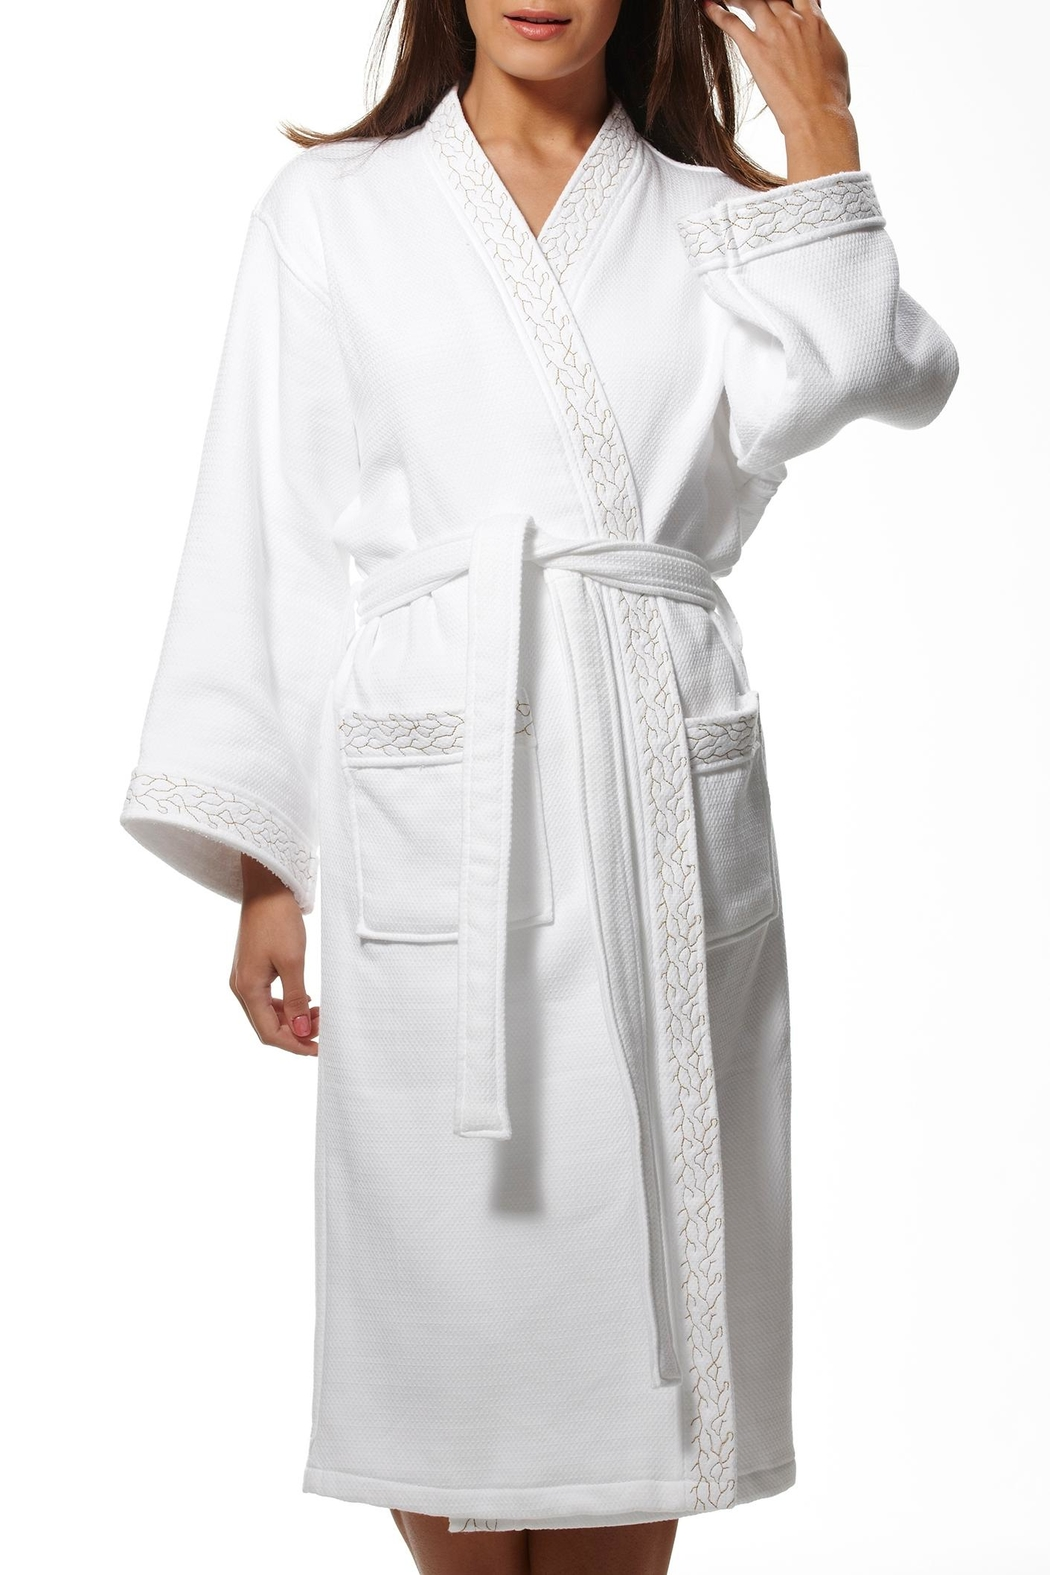 Pierre Cardin Cotton Waffle Robe - Main Image